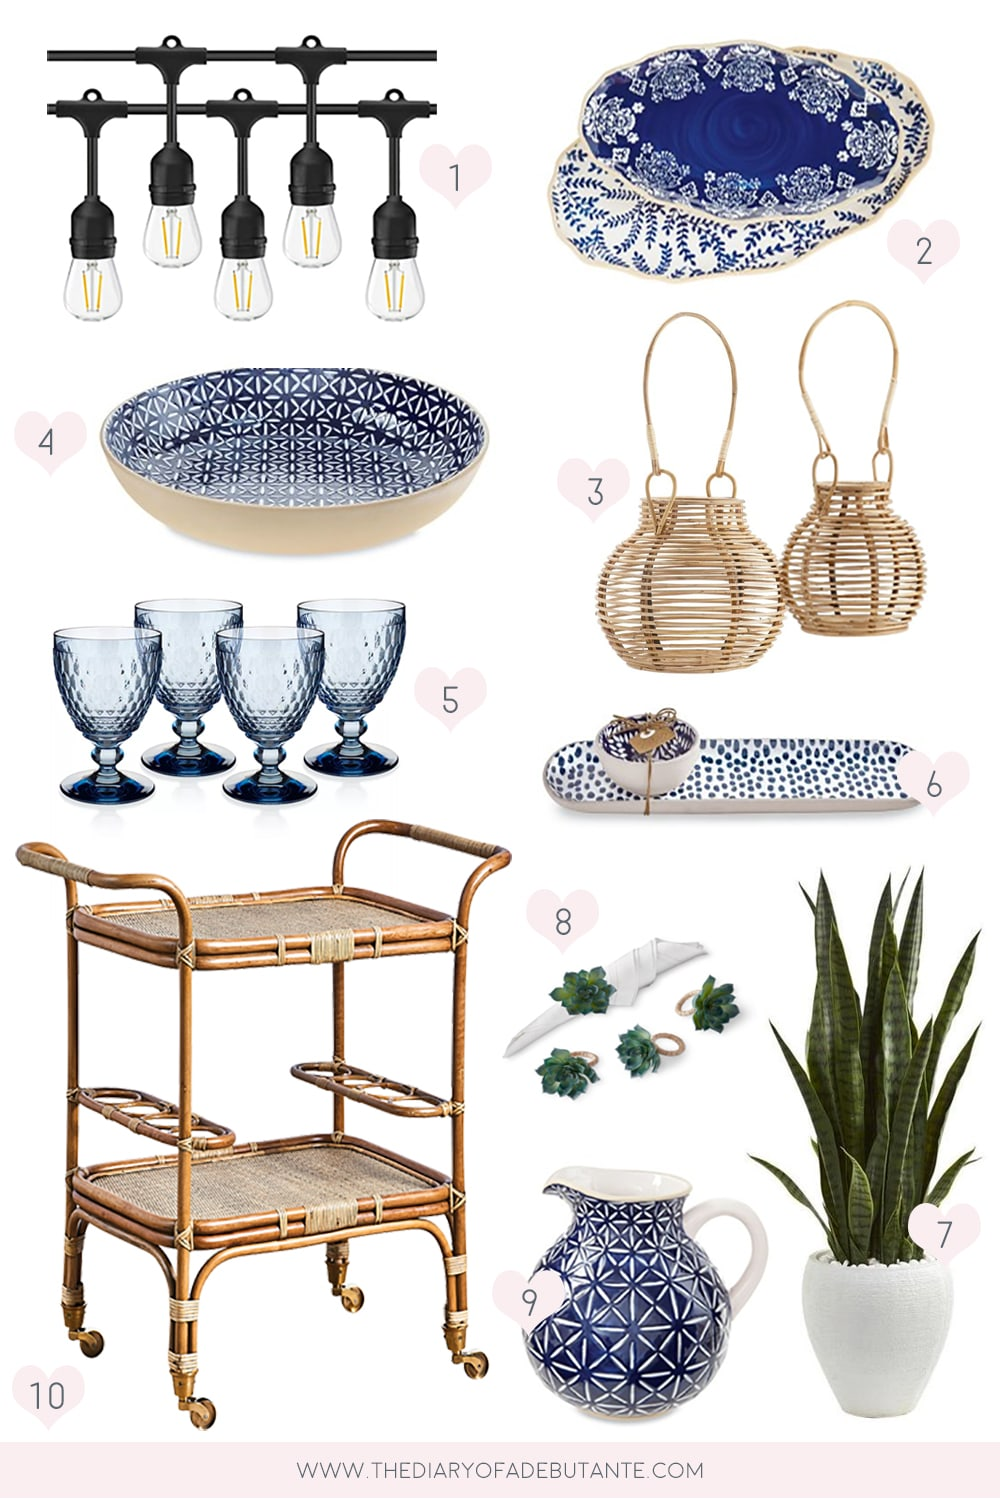 Affordable outdoor dining decor ideas curated by entertaining blogger Stephanie Ziajka on Diary of a Debutante